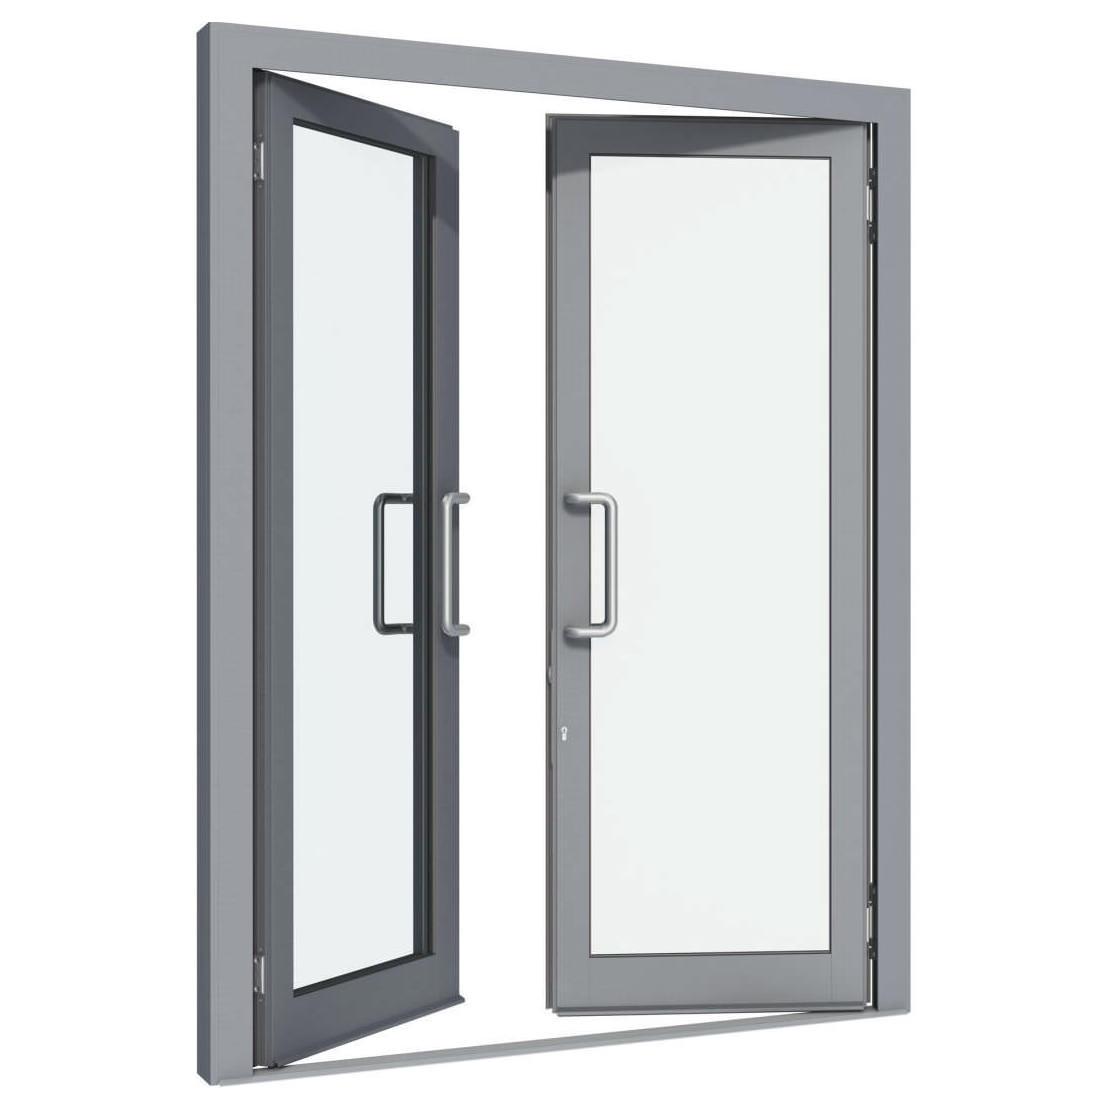 Aluminum Windows And Doors Training : Aluminium doors hayes price rite door prices